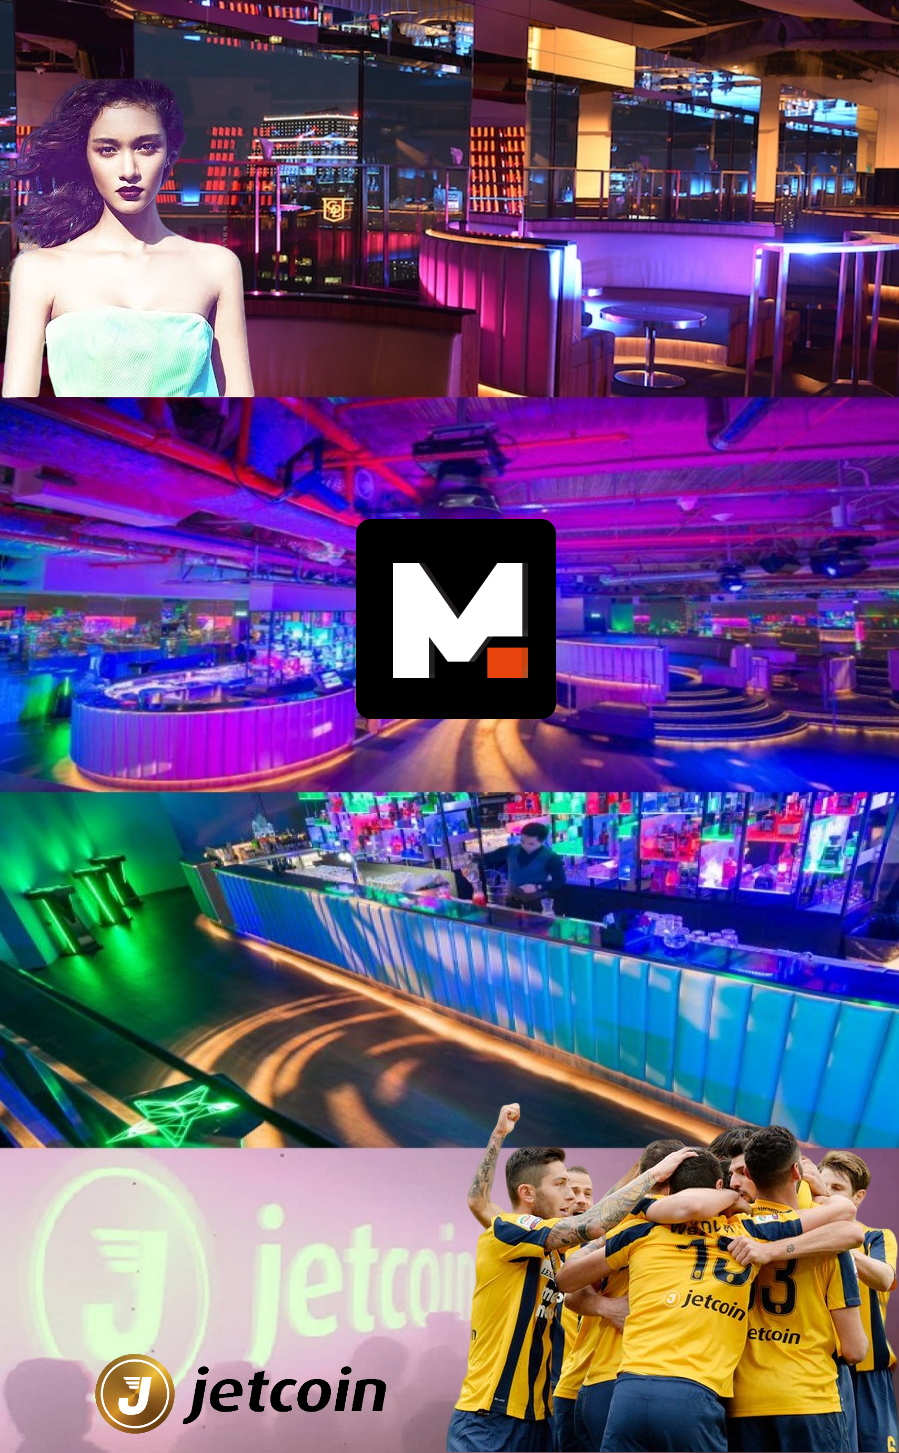 Mintable and Jetcoin to throw a party during the largest Fintech Event in Singapore